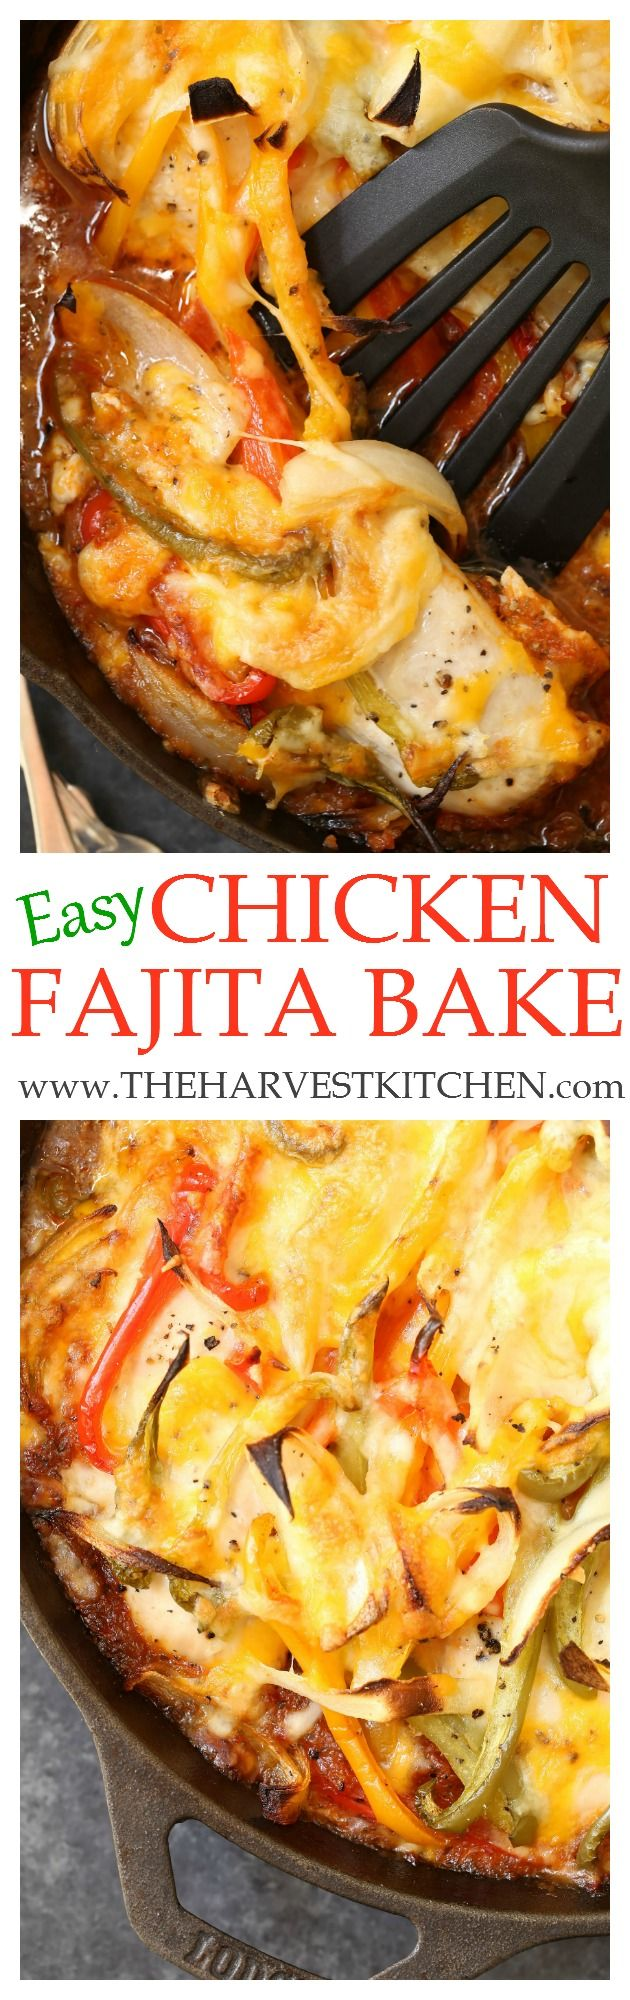 The chicken in this Easy Chicken Fajita Bake is moist, tender and simmered in a deliciously seasoned sauce.  This is one of those easy baked chicken recipes that you can make any night of the week.